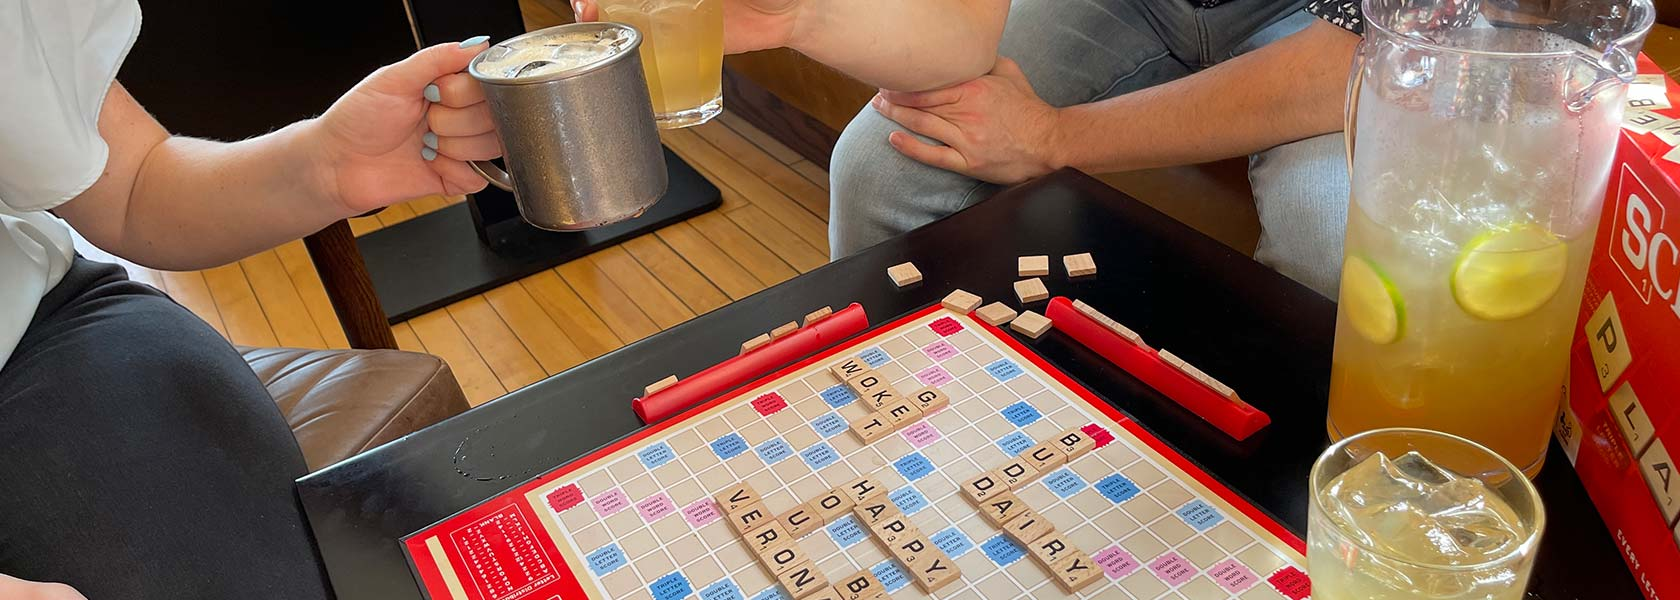 Hands toasting with cocktails above Scrabble game board in play.